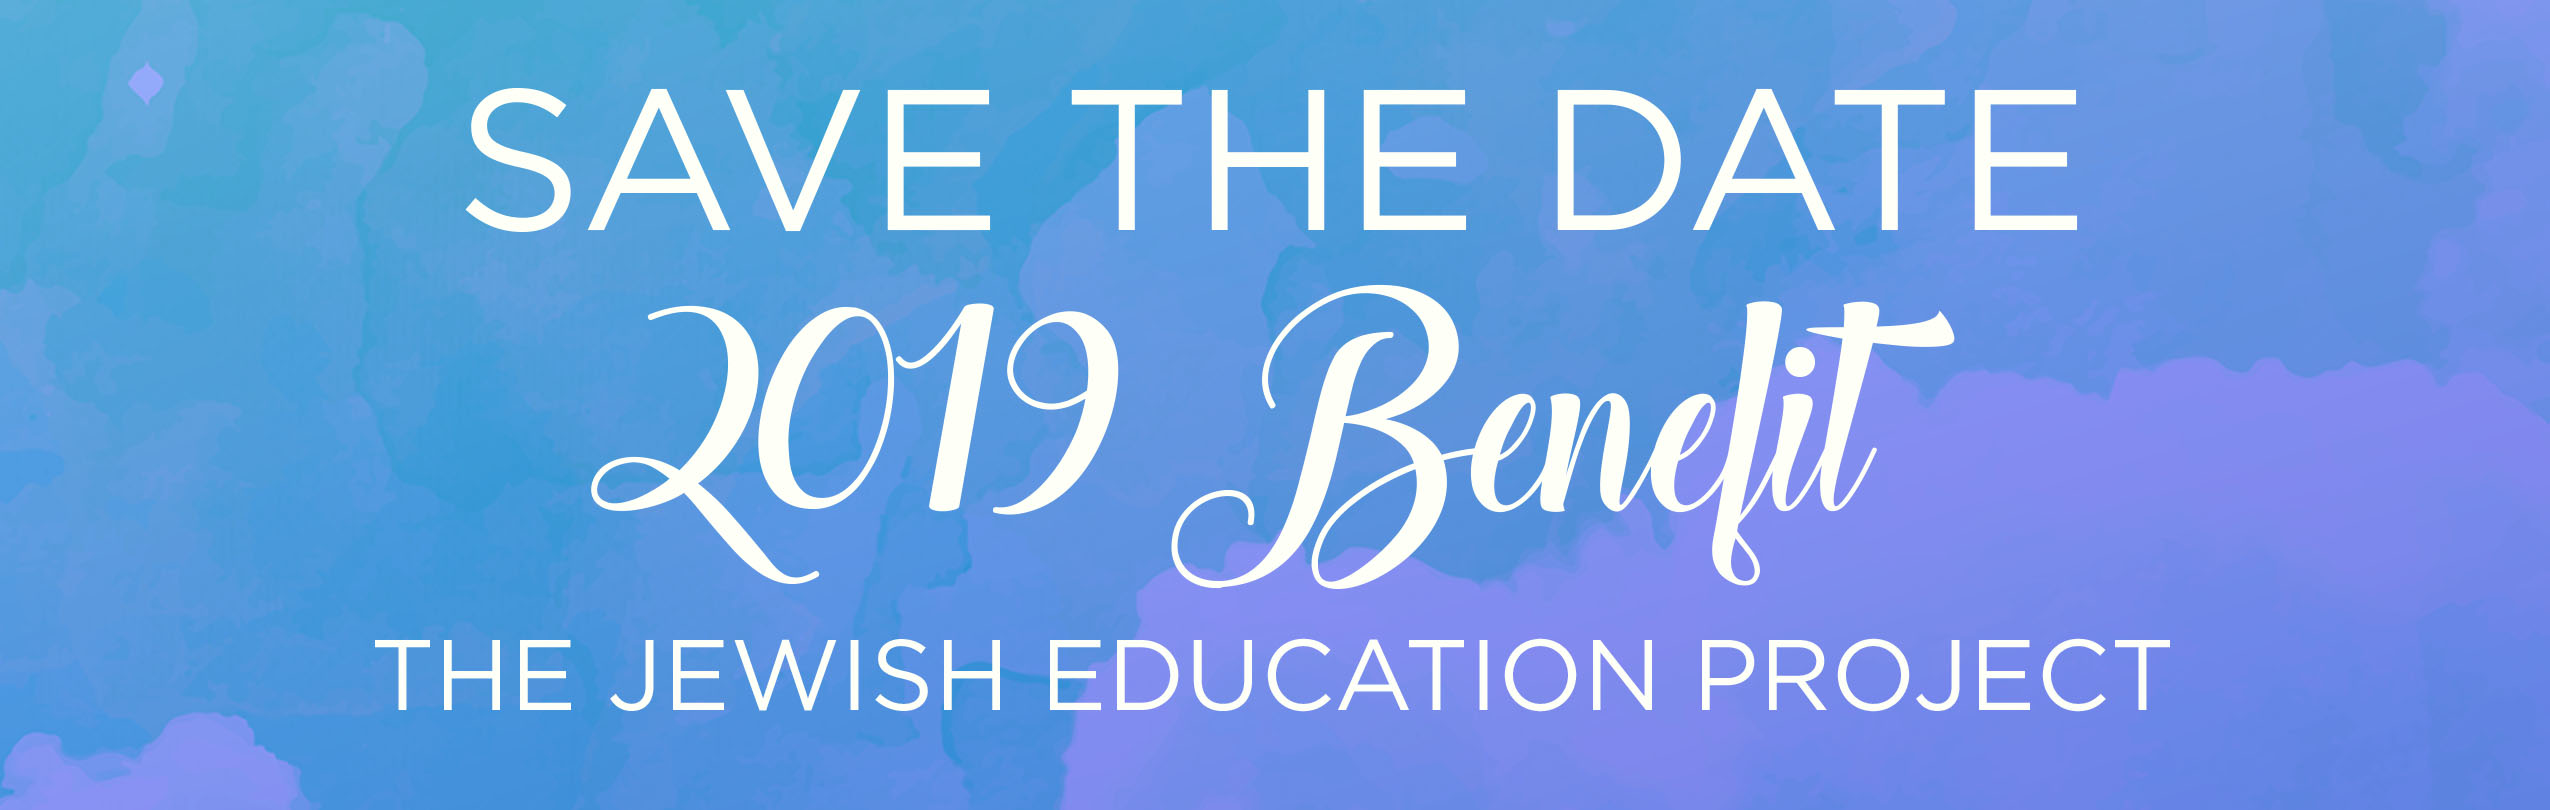 Save the Date - 2019 Benefit